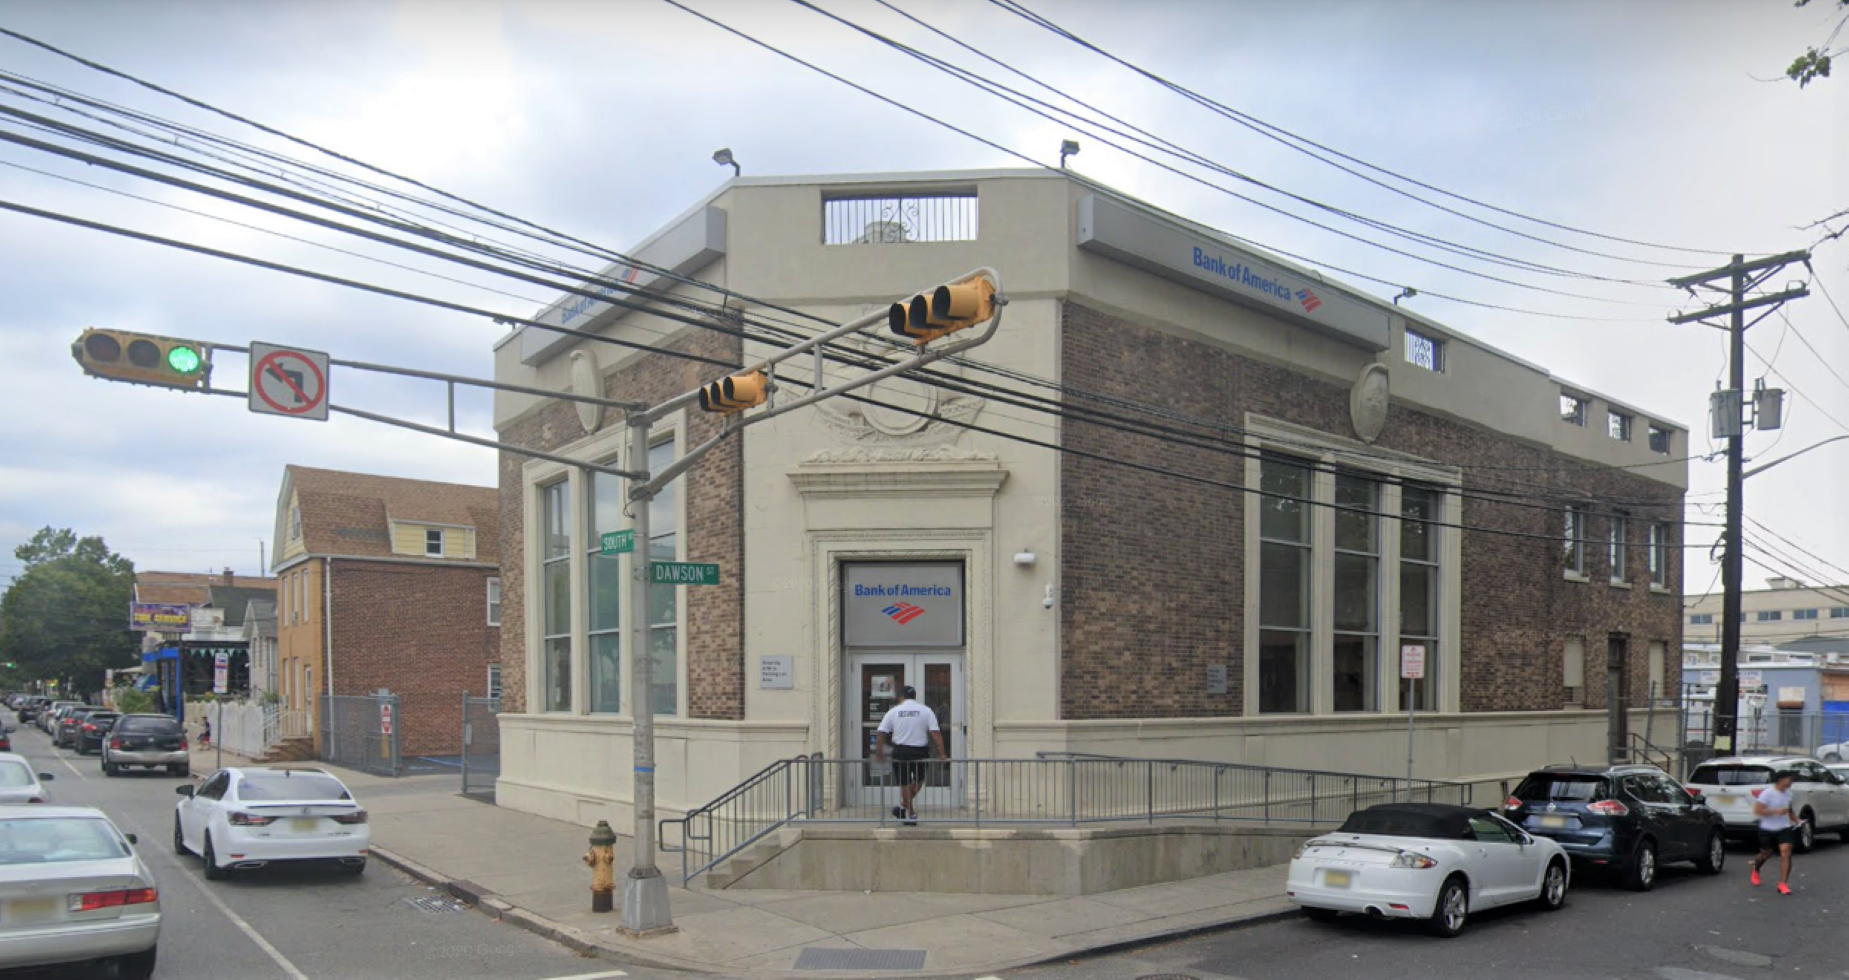 Bank of America financial center with drive-thru ATM | 176 South St, Newark, NJ 07114